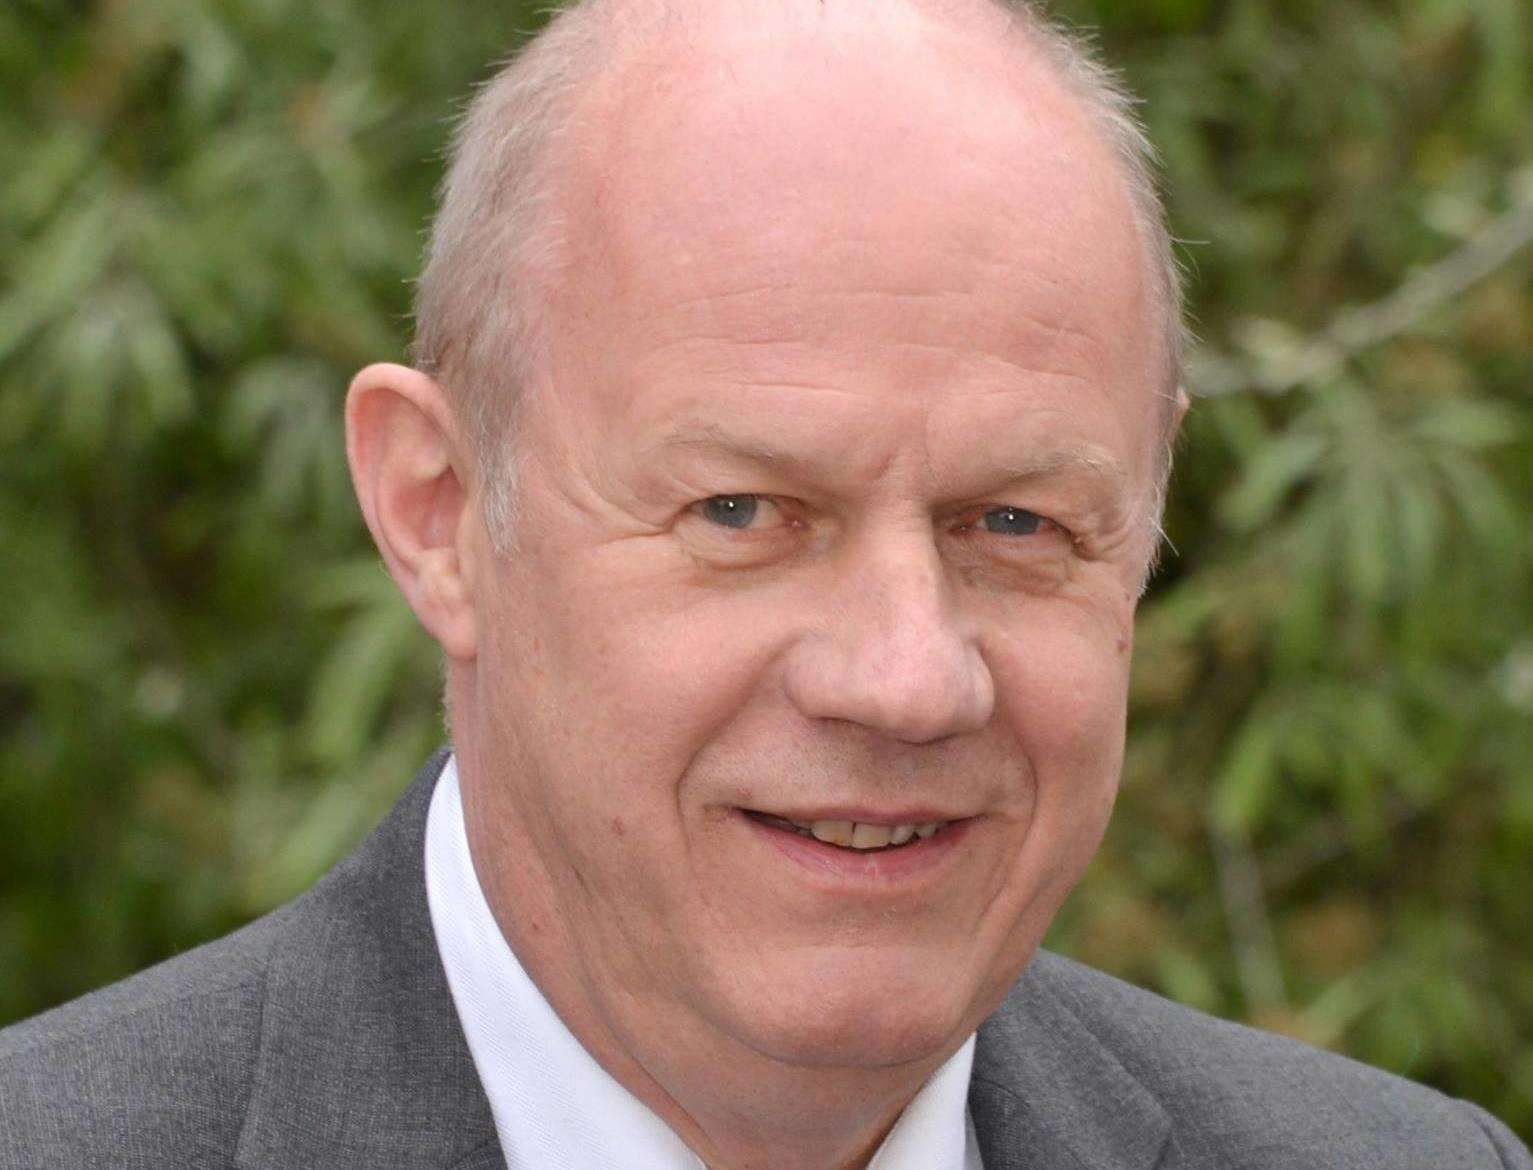 Ashford MP Damian Green revealed he is paid £1,000 a month by the Mail on Sunday